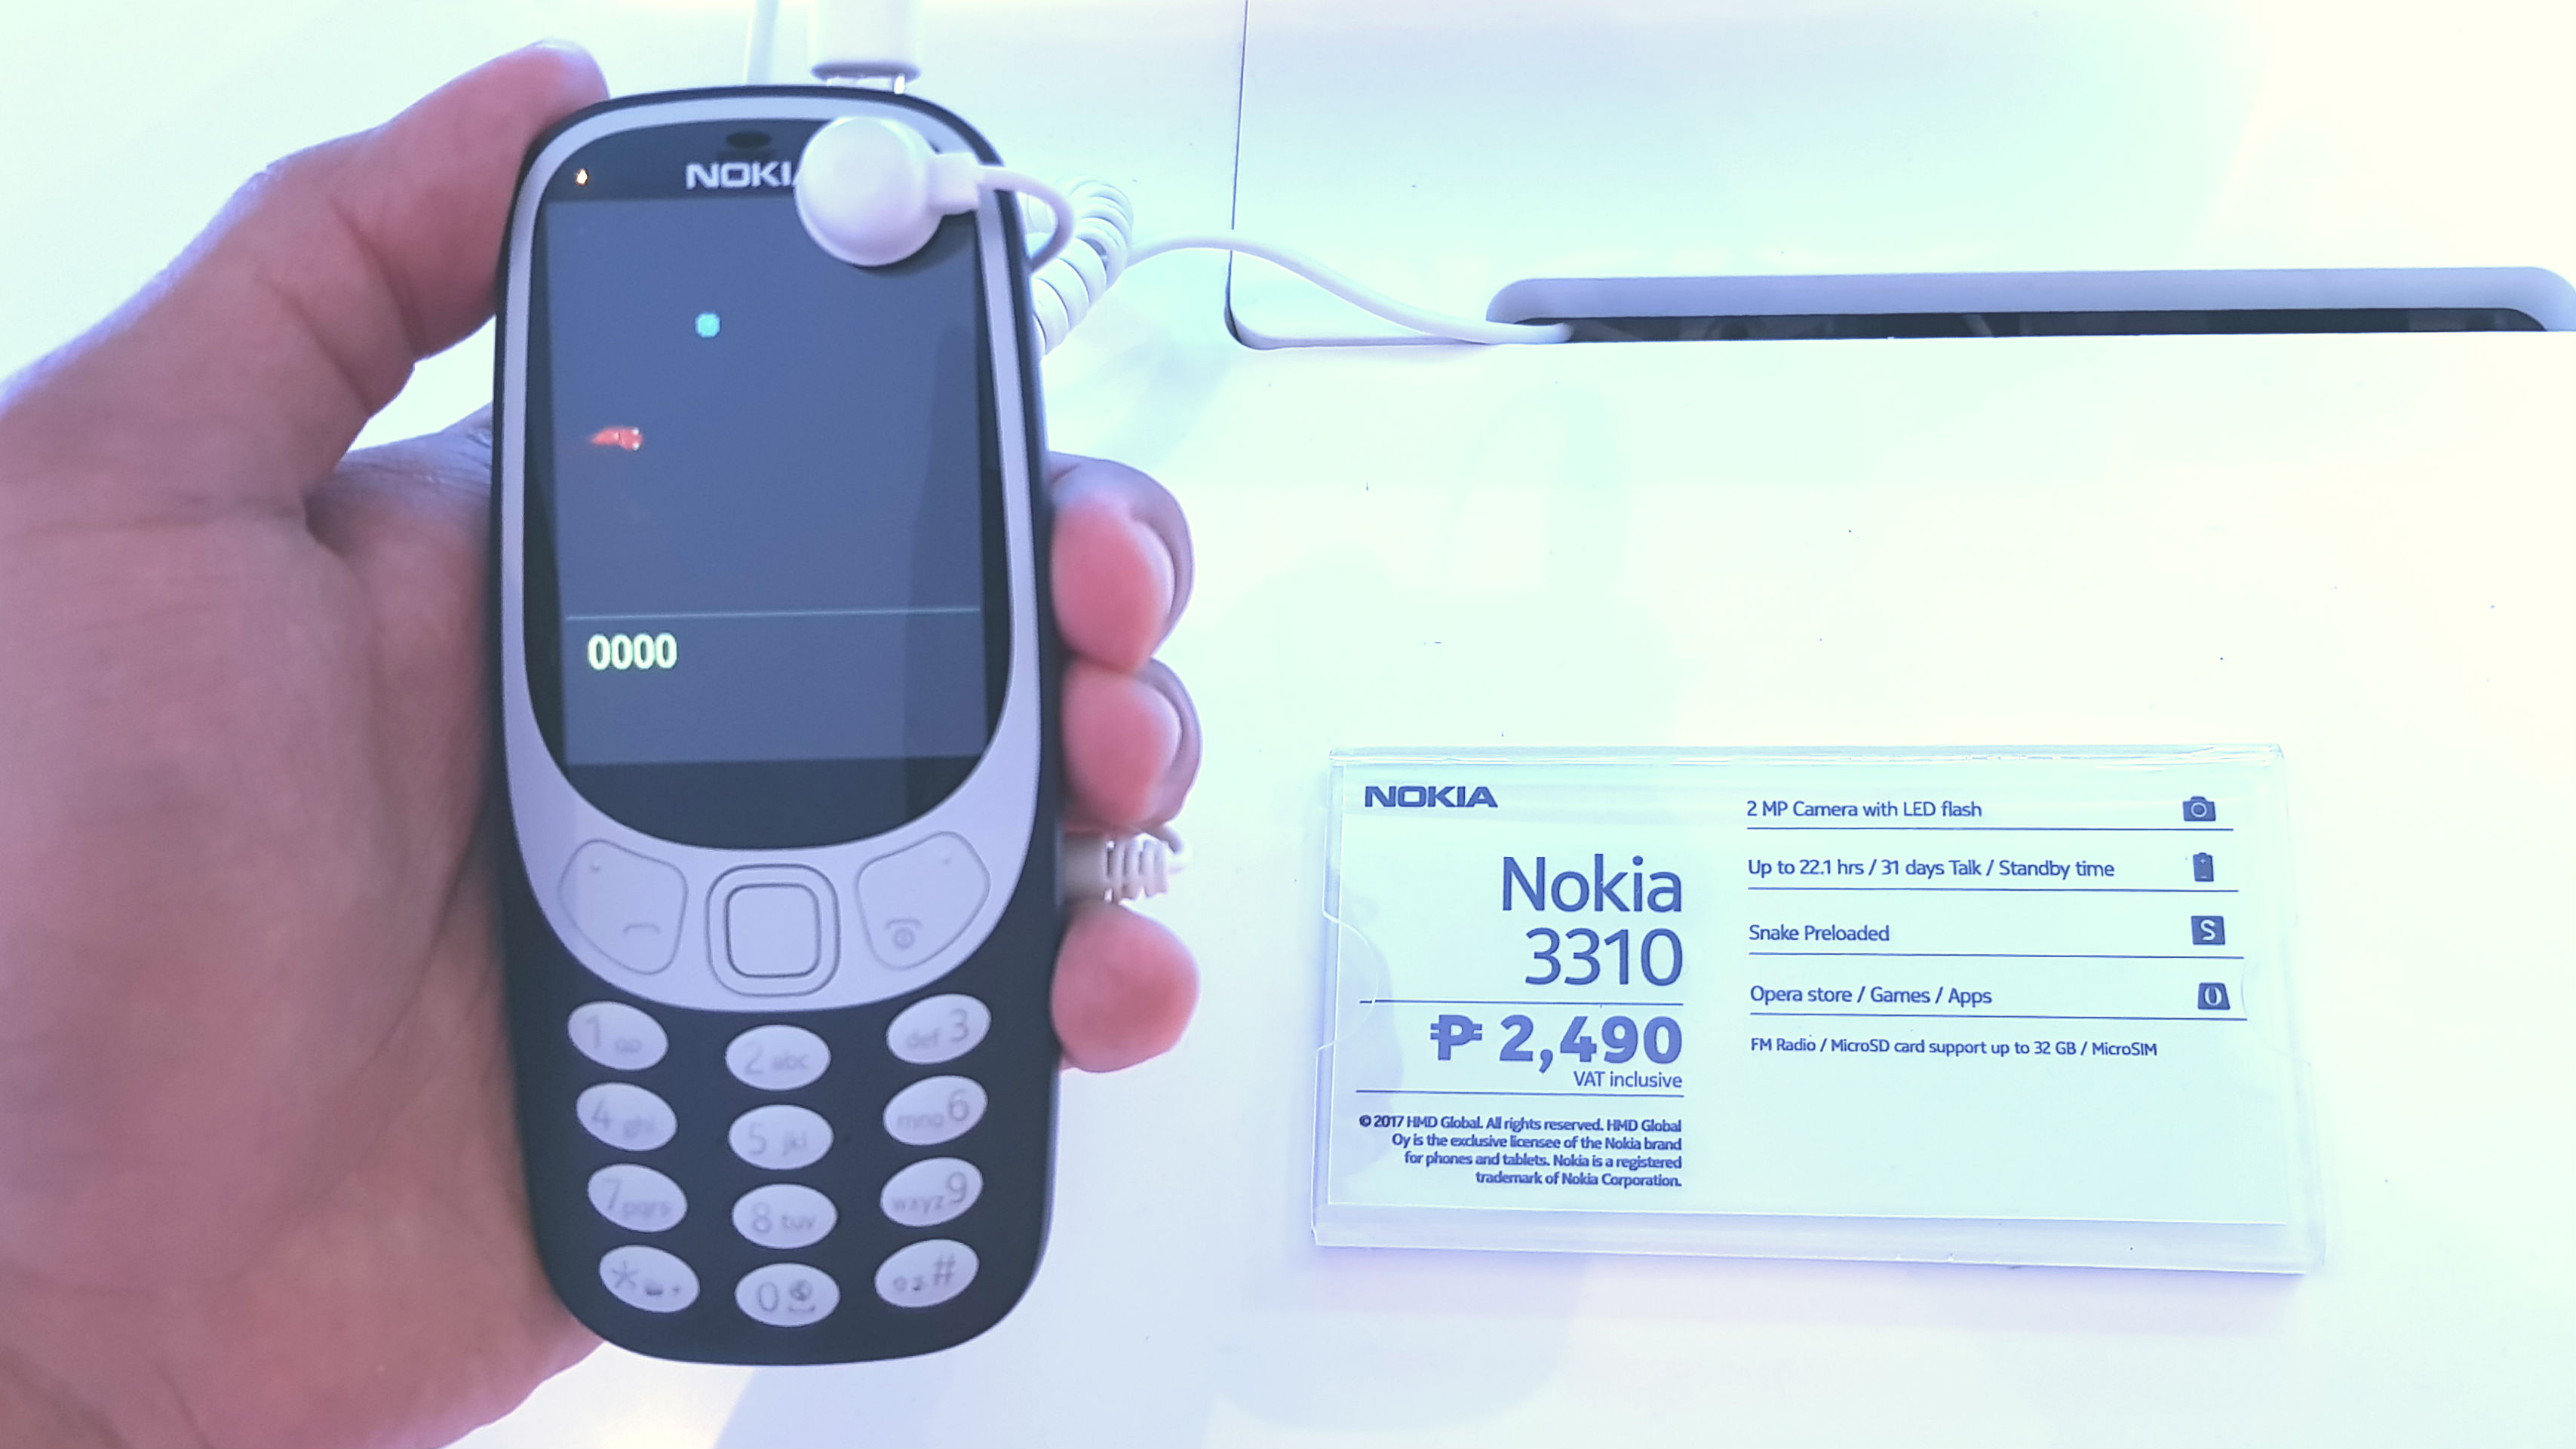 The new phones arrive by the end of June 2017 with the Nokia 3 priced at P6 990 the 5 for P9 990 and the 6 for P11 990 The new Nokia 3310 will retail for P2